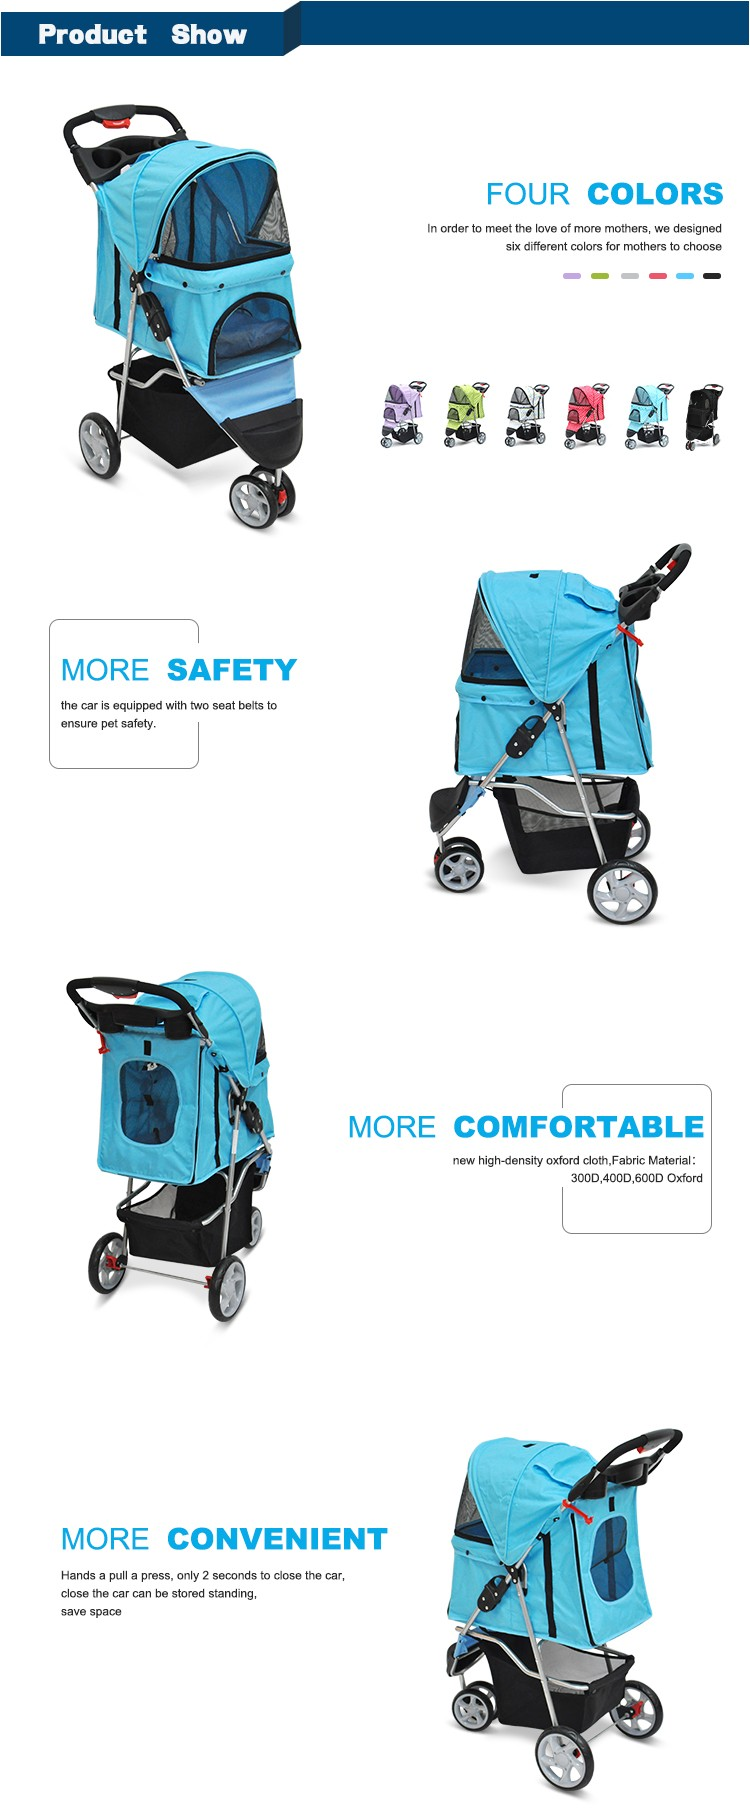 3 Wheel Prams Argos Argos Pet Pram 3 Wheels Pet Dog Cat Stroller Folding Dog Trolley Folding Dog Trolley Sp03 View 3 Wheels Pet Dog Cat Stroller Tongba Product Details